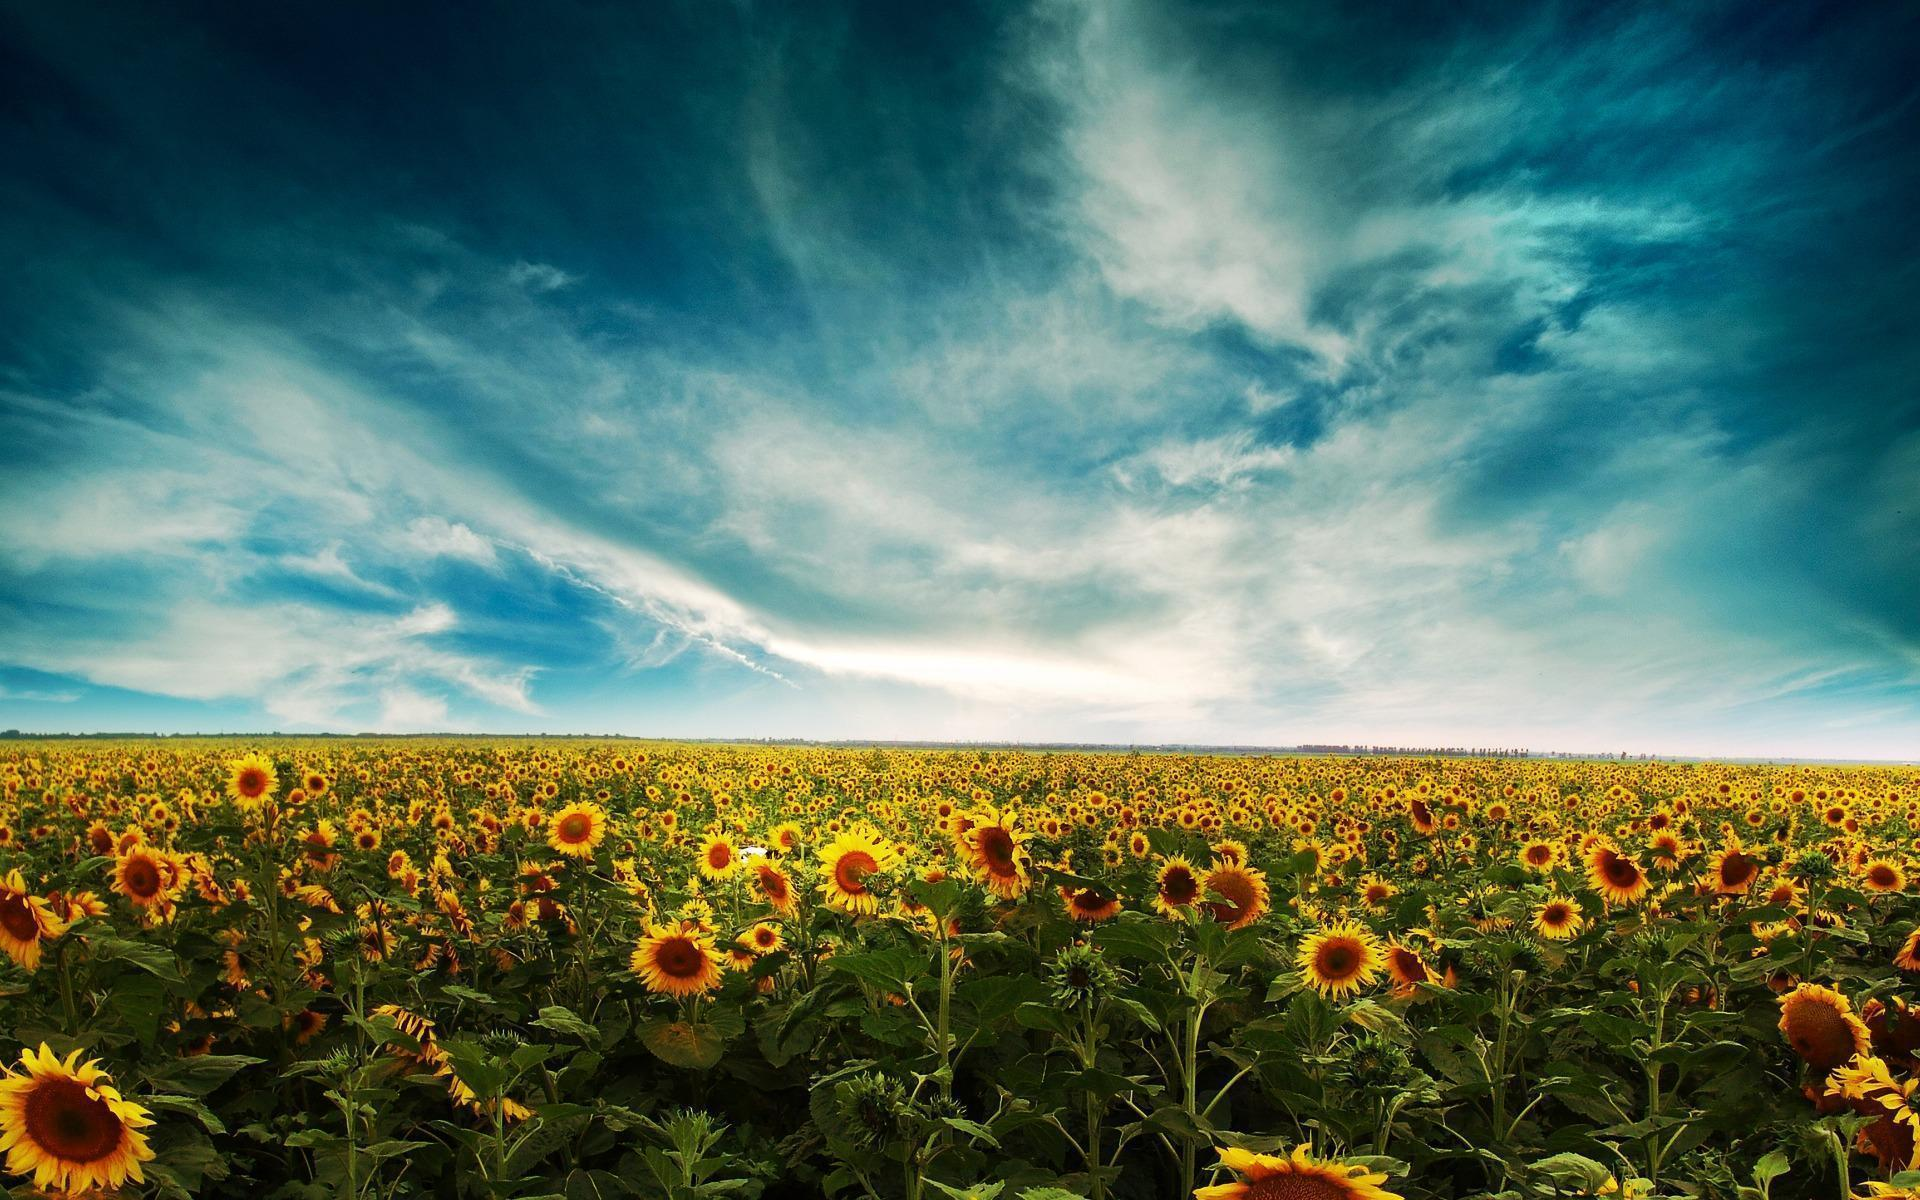 Sunflower Background Desktop Wallpaper, Size: 1920x1080 .